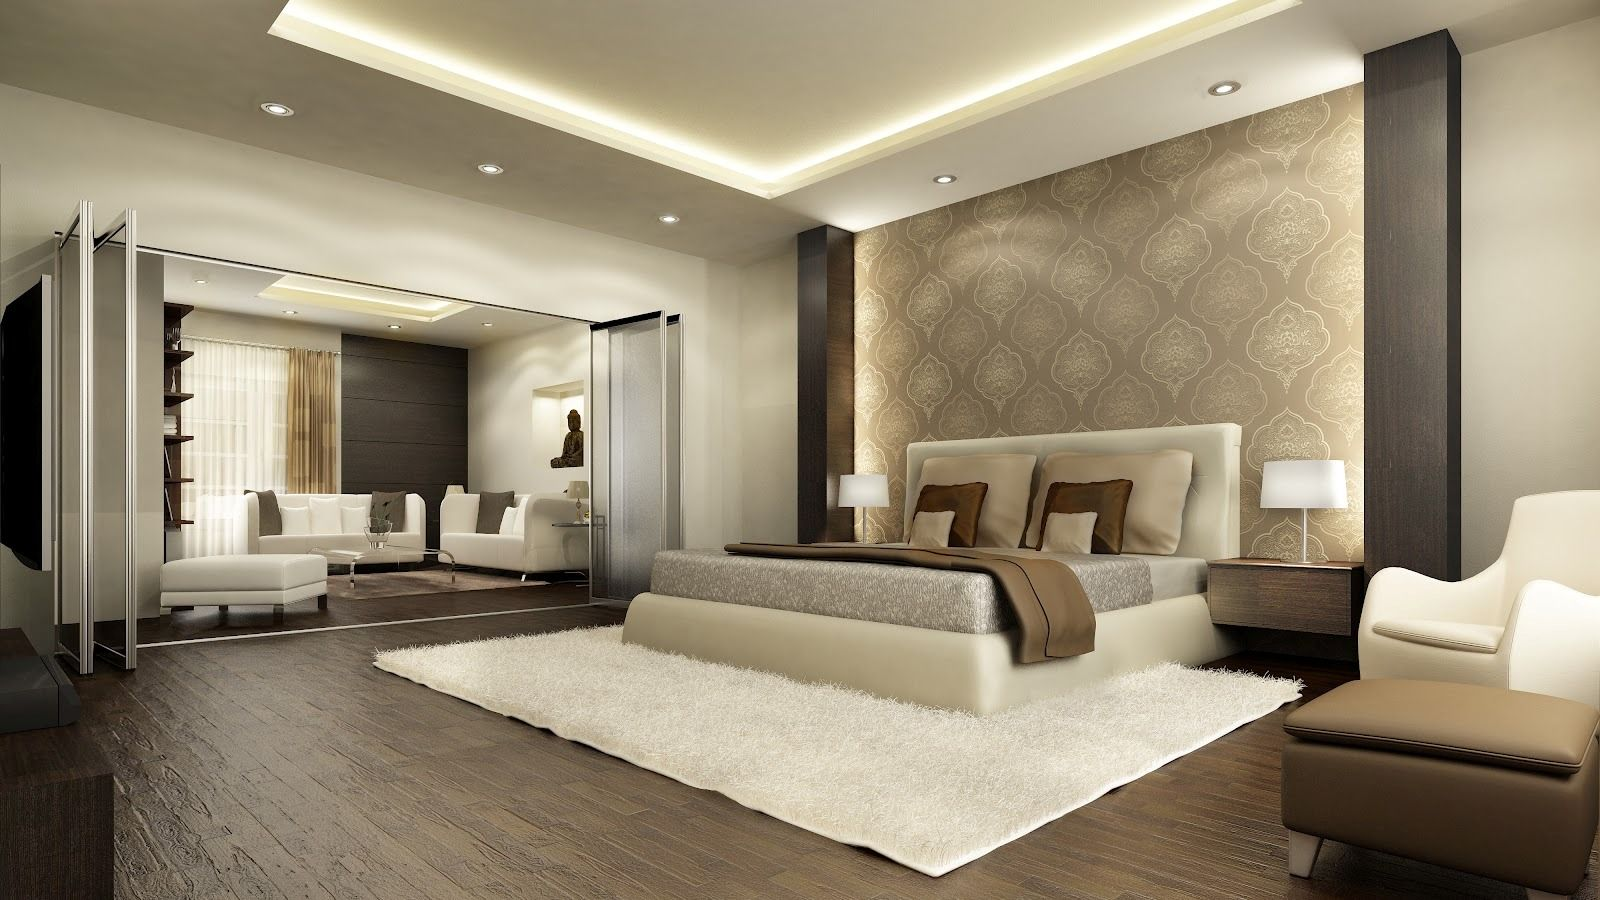 master bedroom design - Designs For Master Bedroom